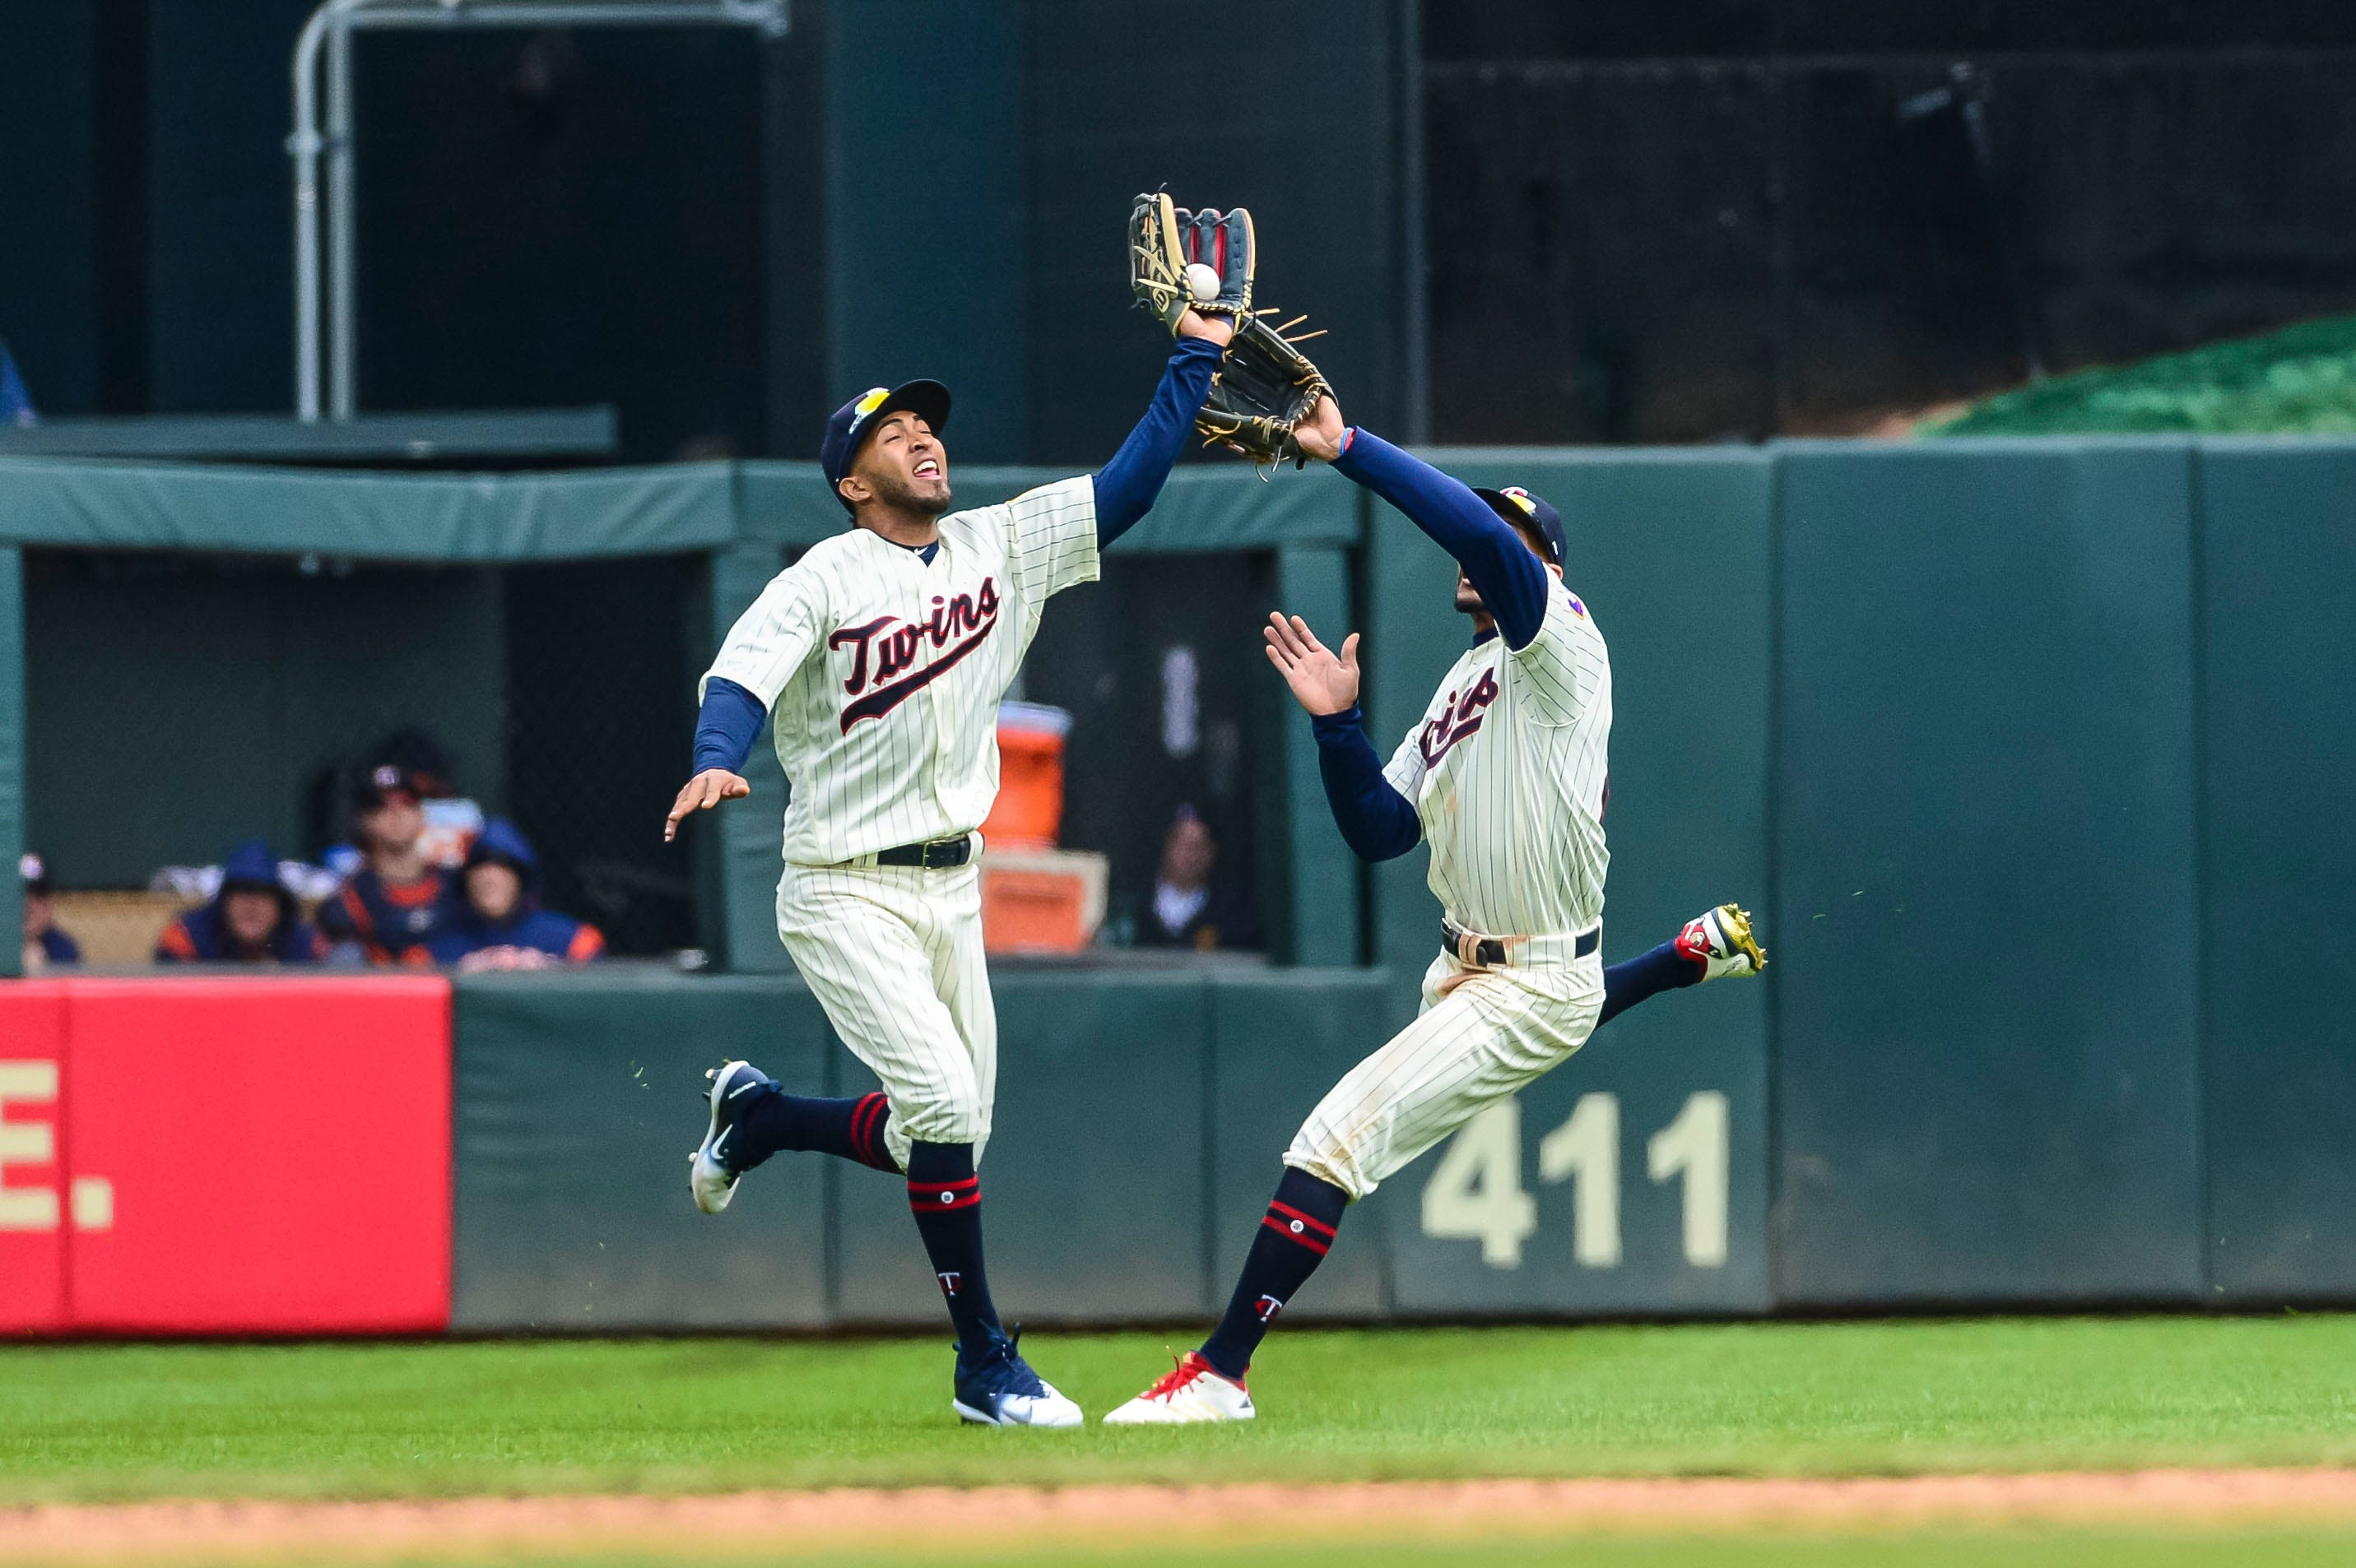 Minnesota Twins left fielder Eddie Rosario, left, runs in front of center fielder Byron Buxton to catch a fly ball off the bat of Houston Astros third baseman J.D. Davis during the fifth inning at Target Field in Minneapolis.